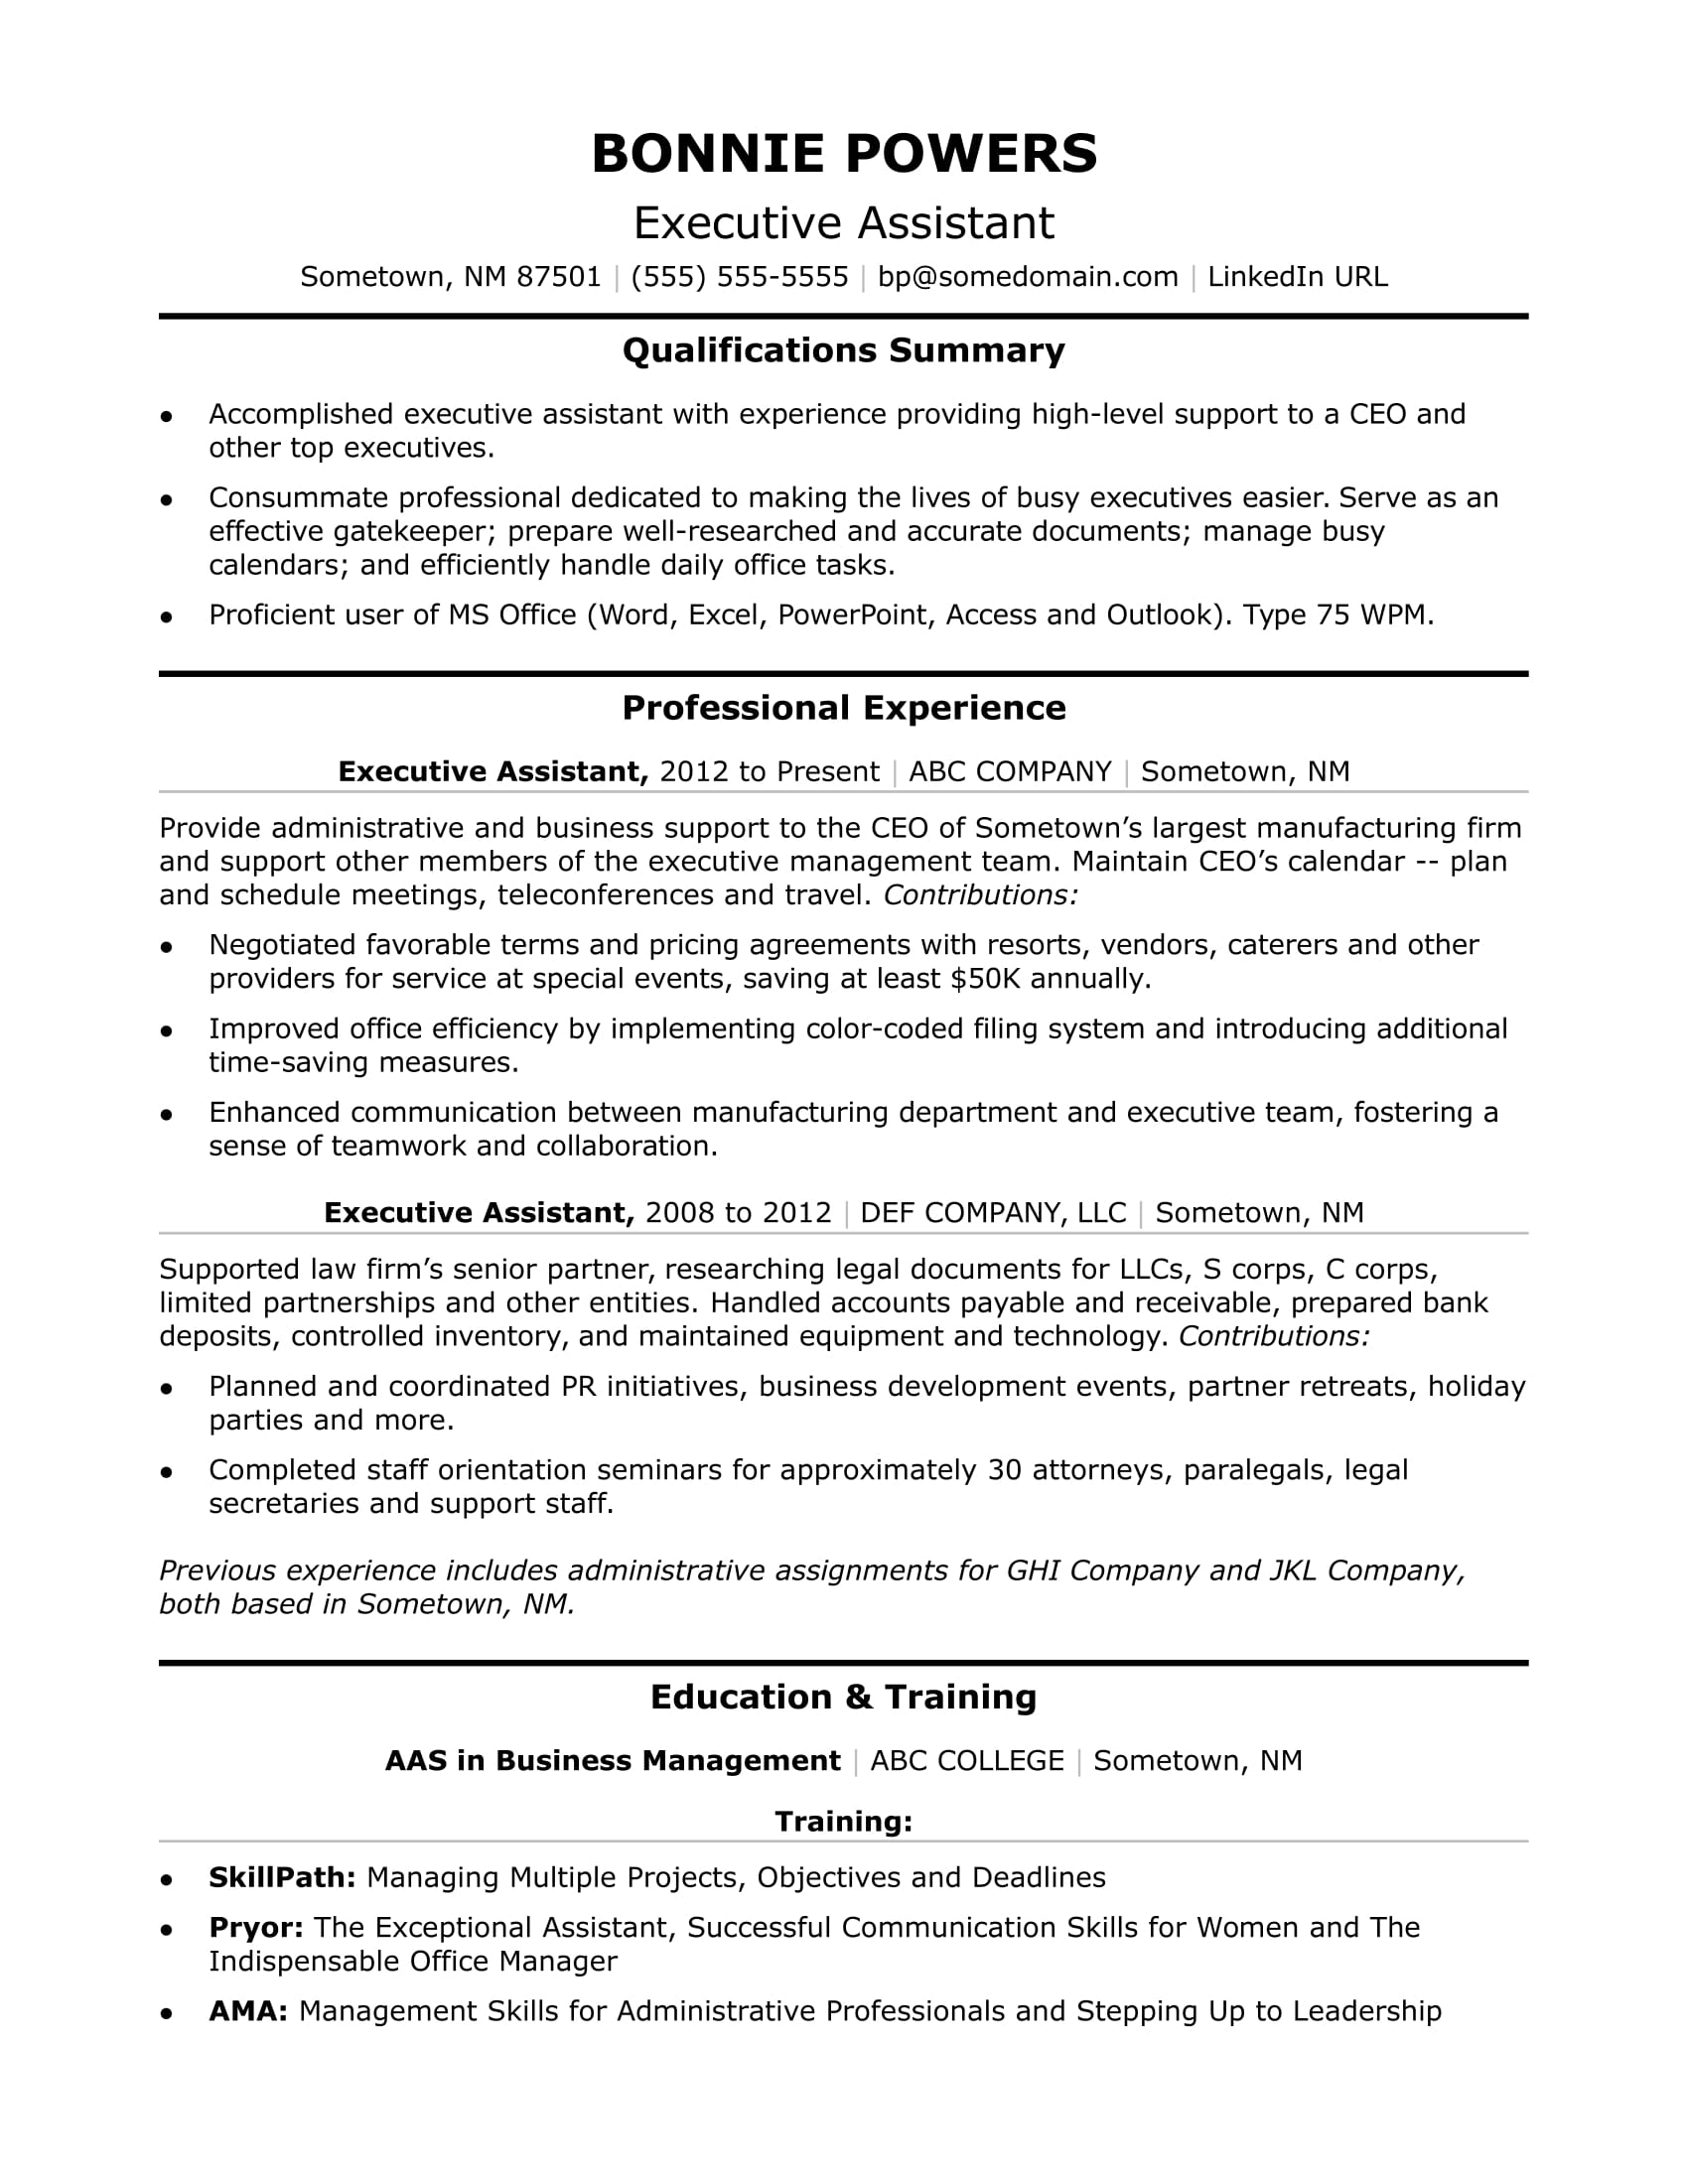 executive administrative assistant resume sample monster summary patient service Resume Executive Assistant Resume Summary